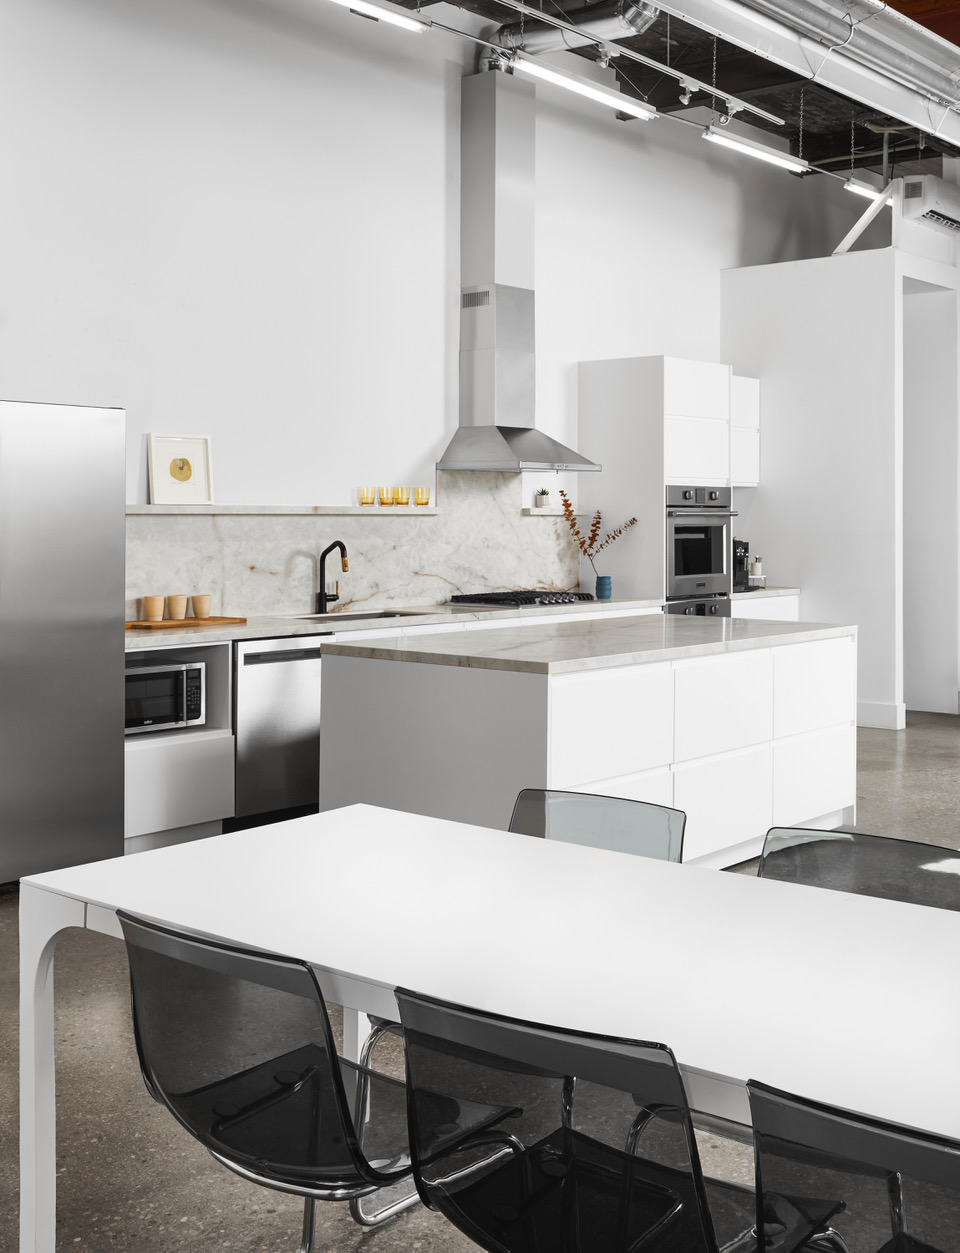 A modern kitchen studio with light counters and stainless steel appliances.